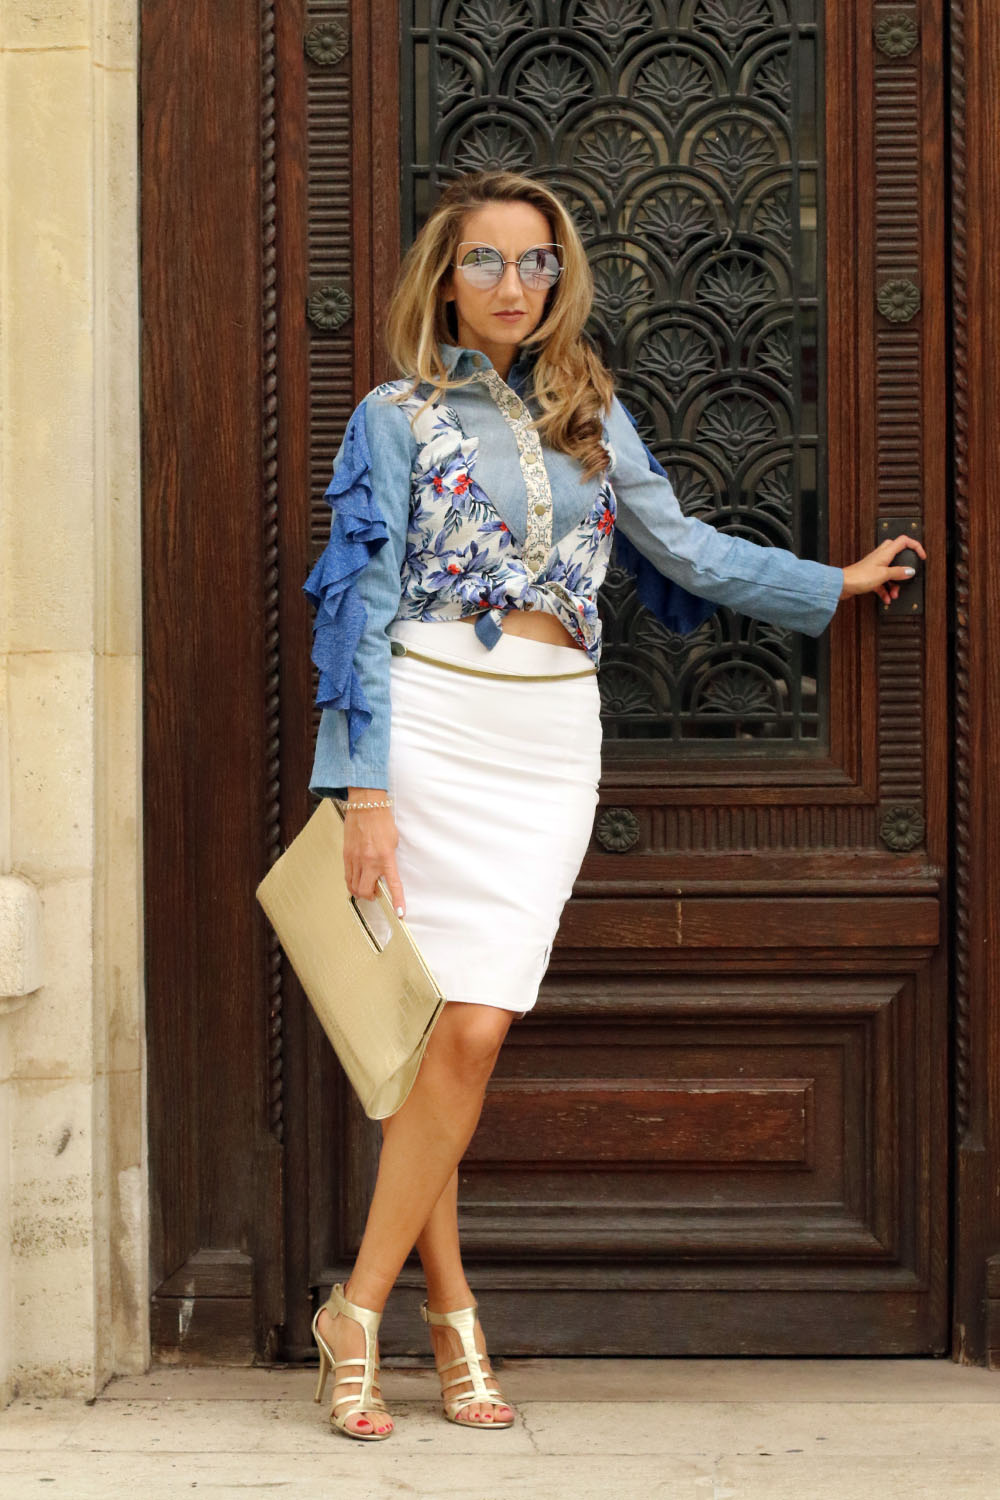 colurclub_fashion_blog_outfit_juan-carlos-cordillo-shirt-guess-shoes-gold-bag13